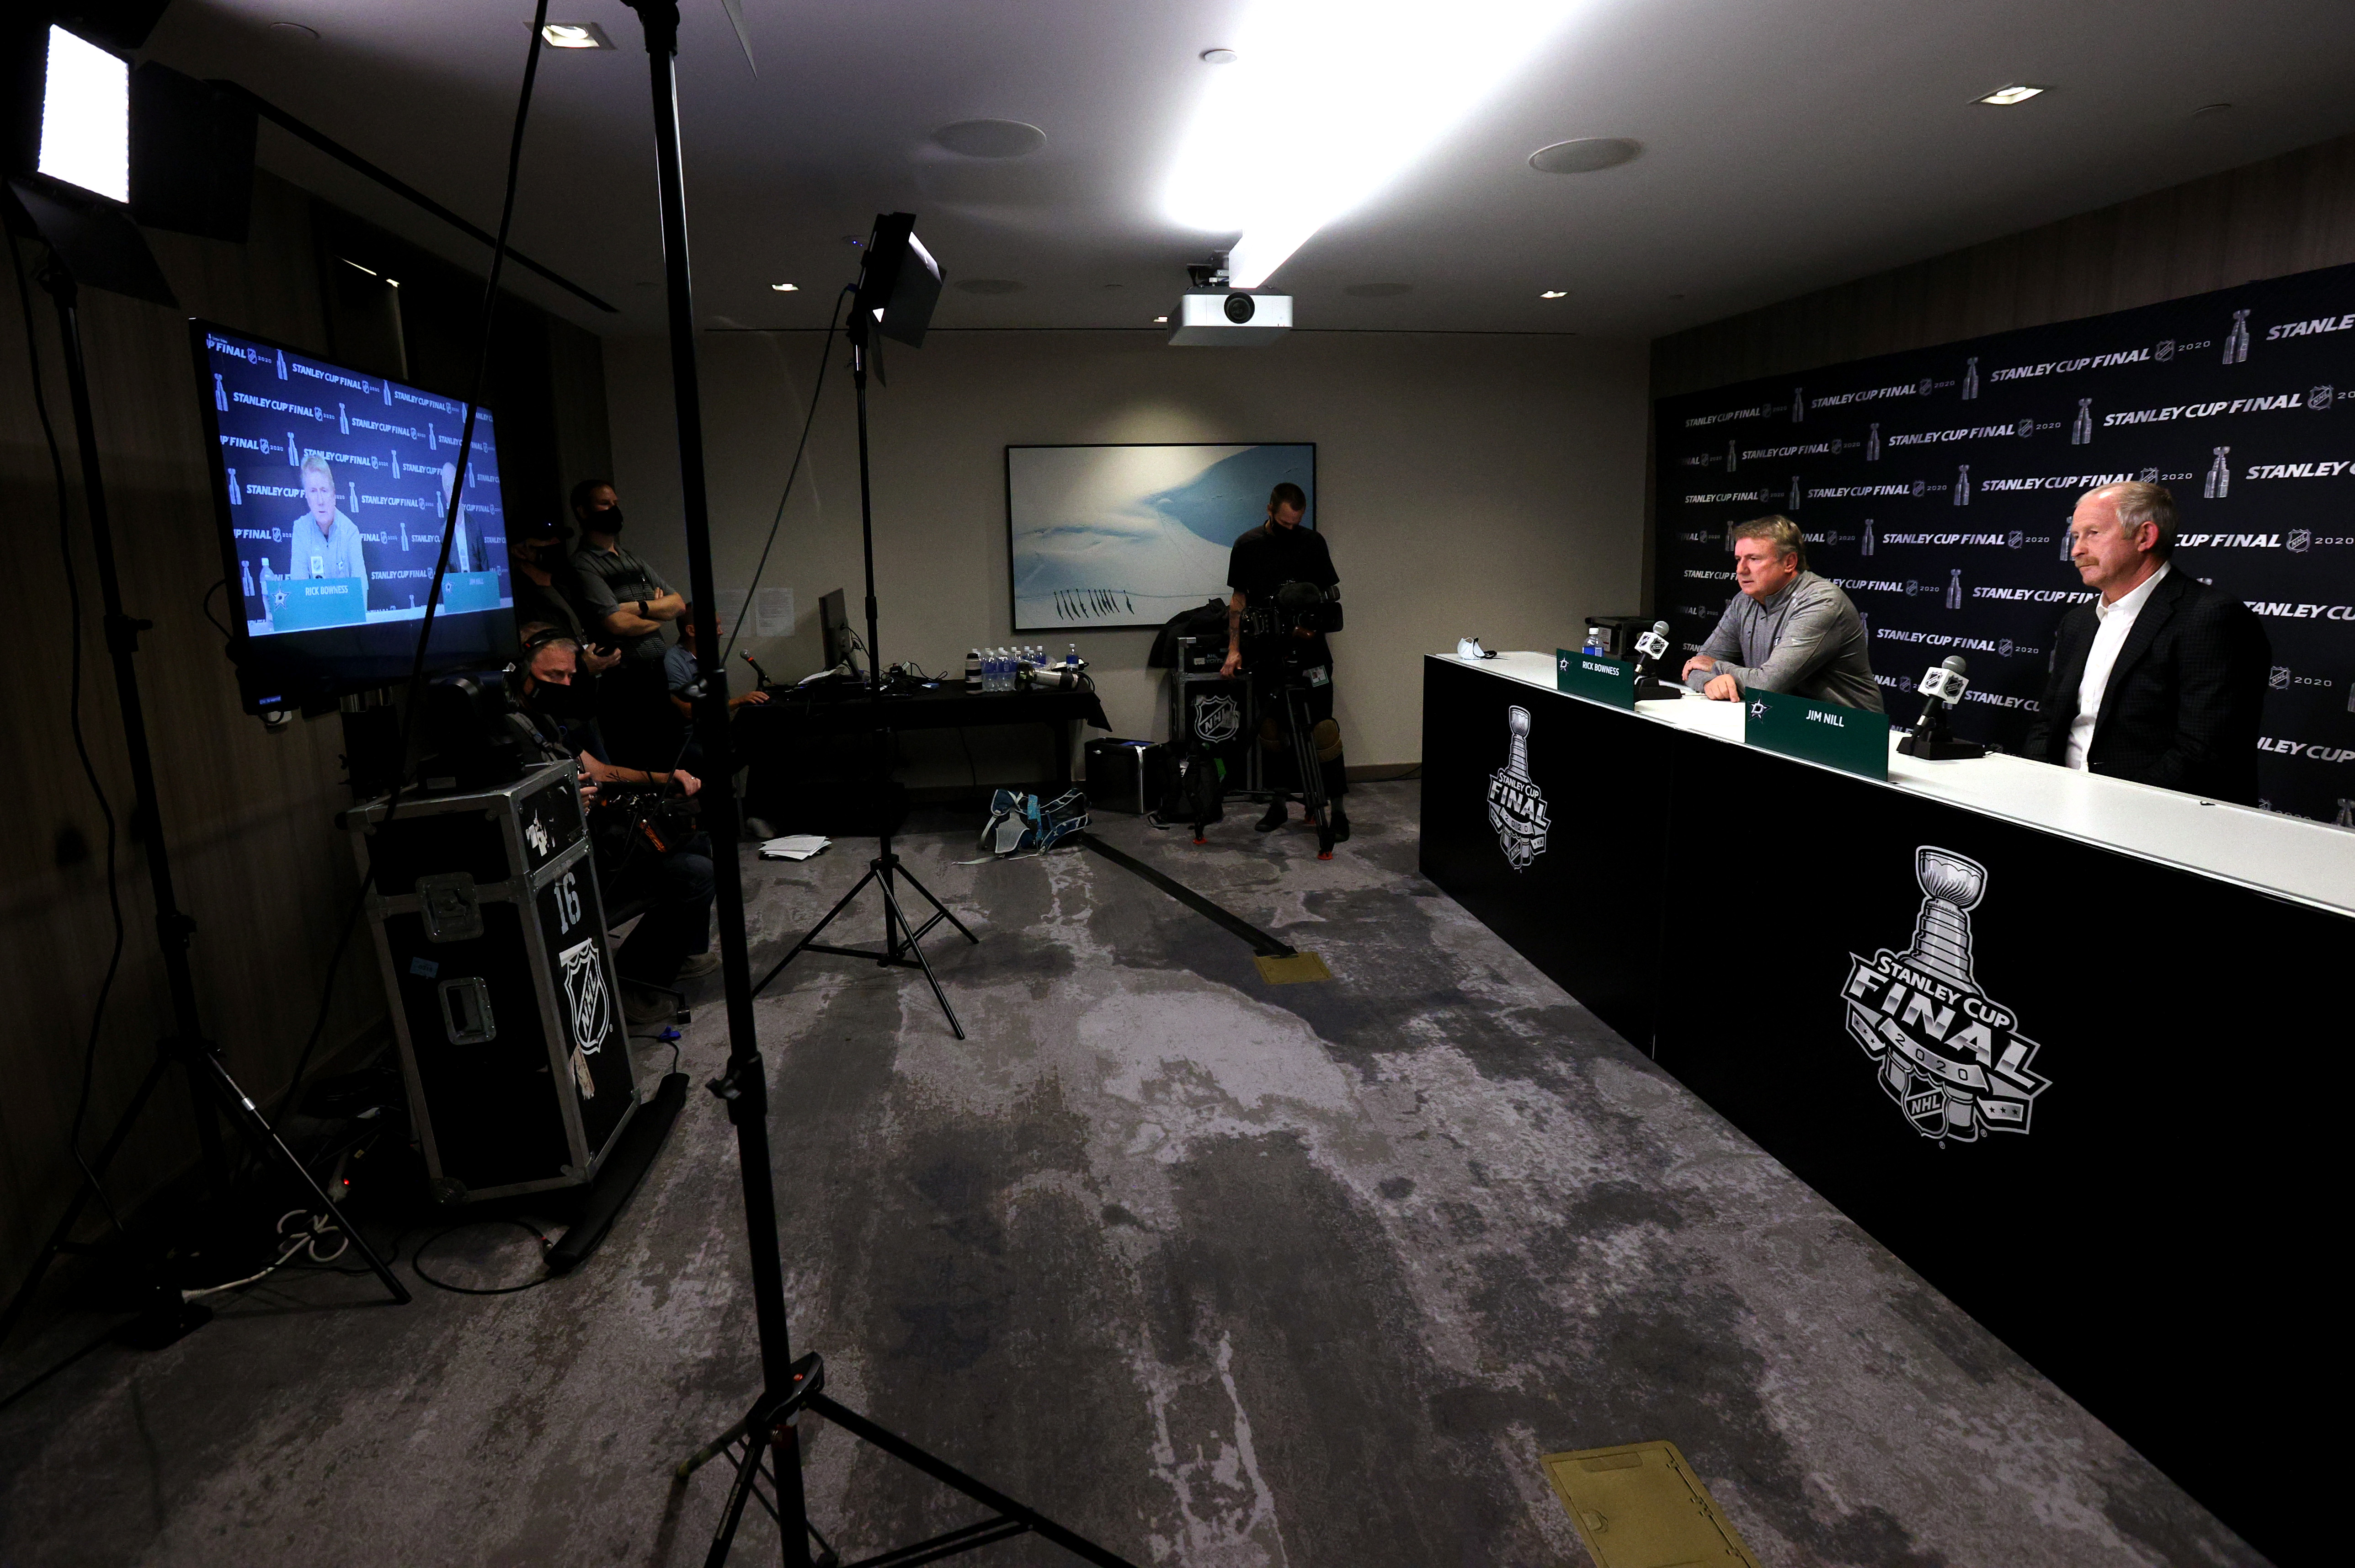 2020 NHL Stanley Cup Final - Media Day